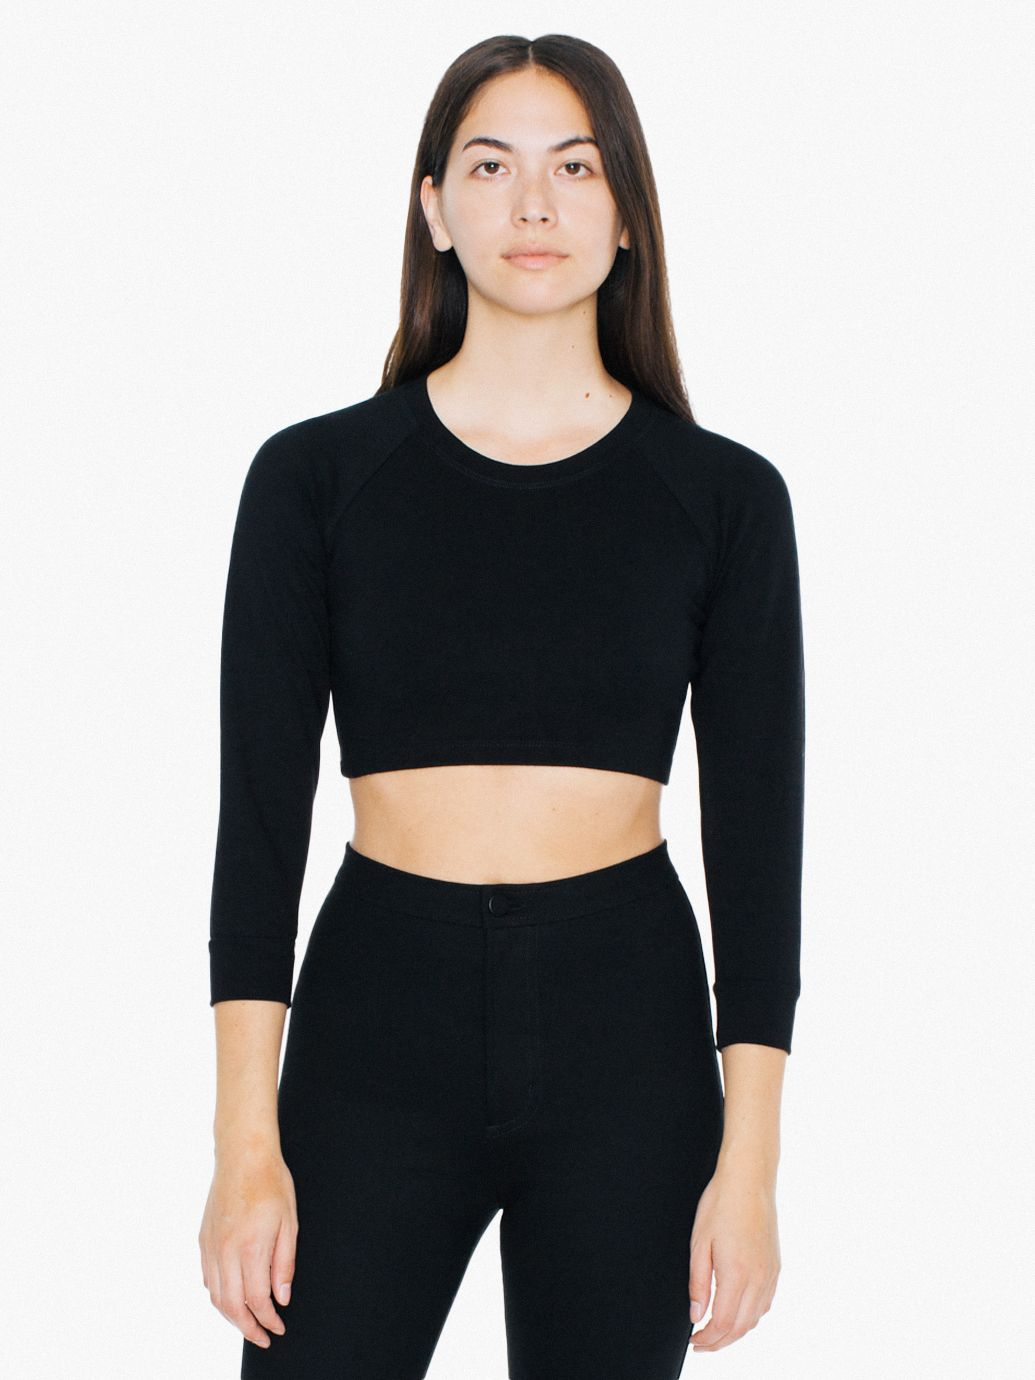 30 Things You Can Get From American Apparel That Are On